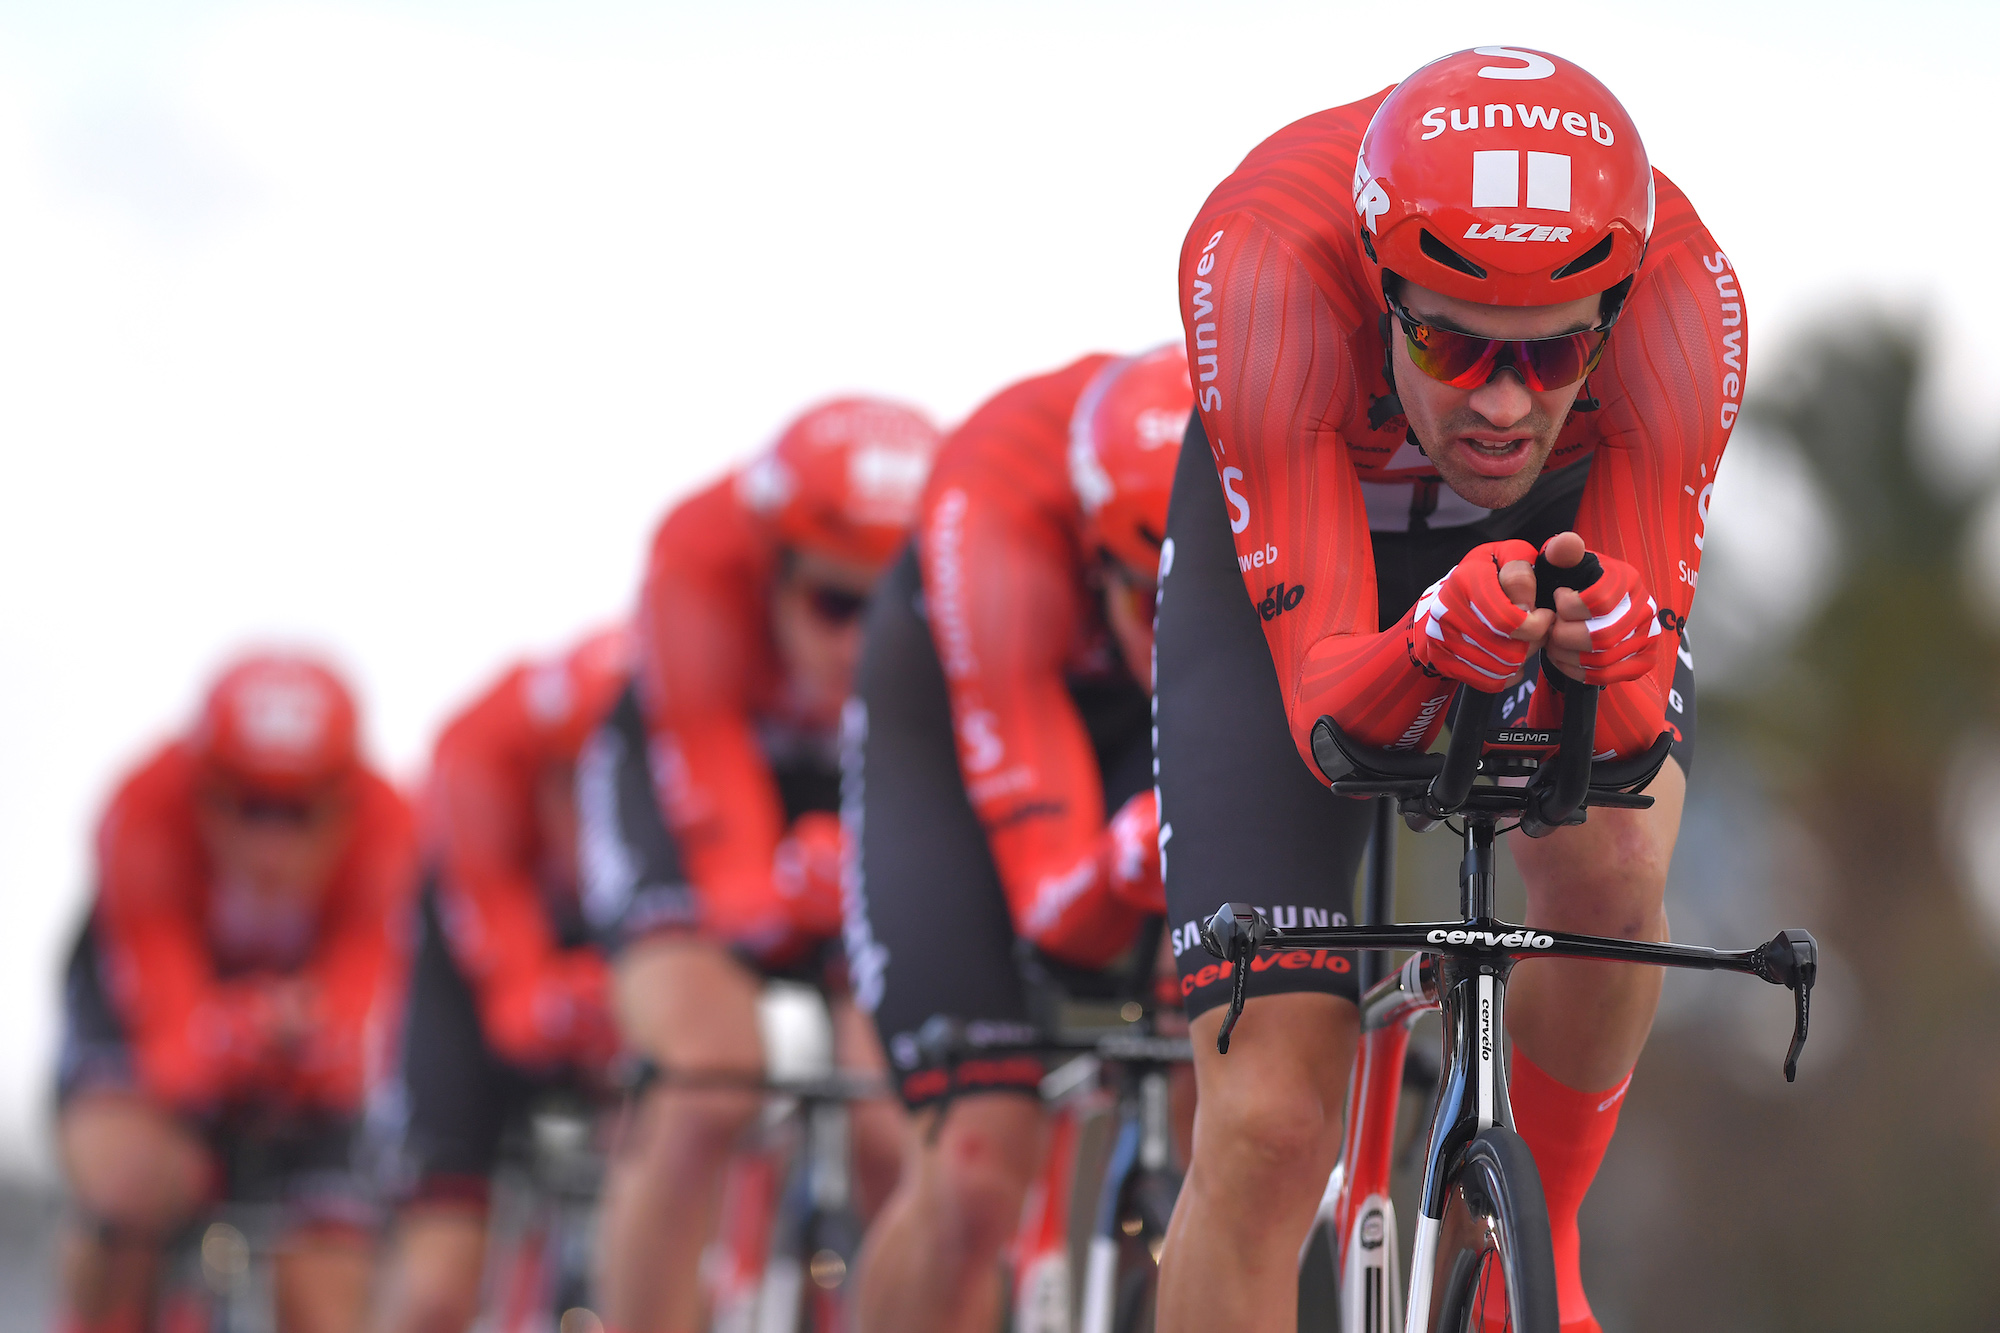 Sunweb exodus continues as Tom Dumoulin's trainer leaves team